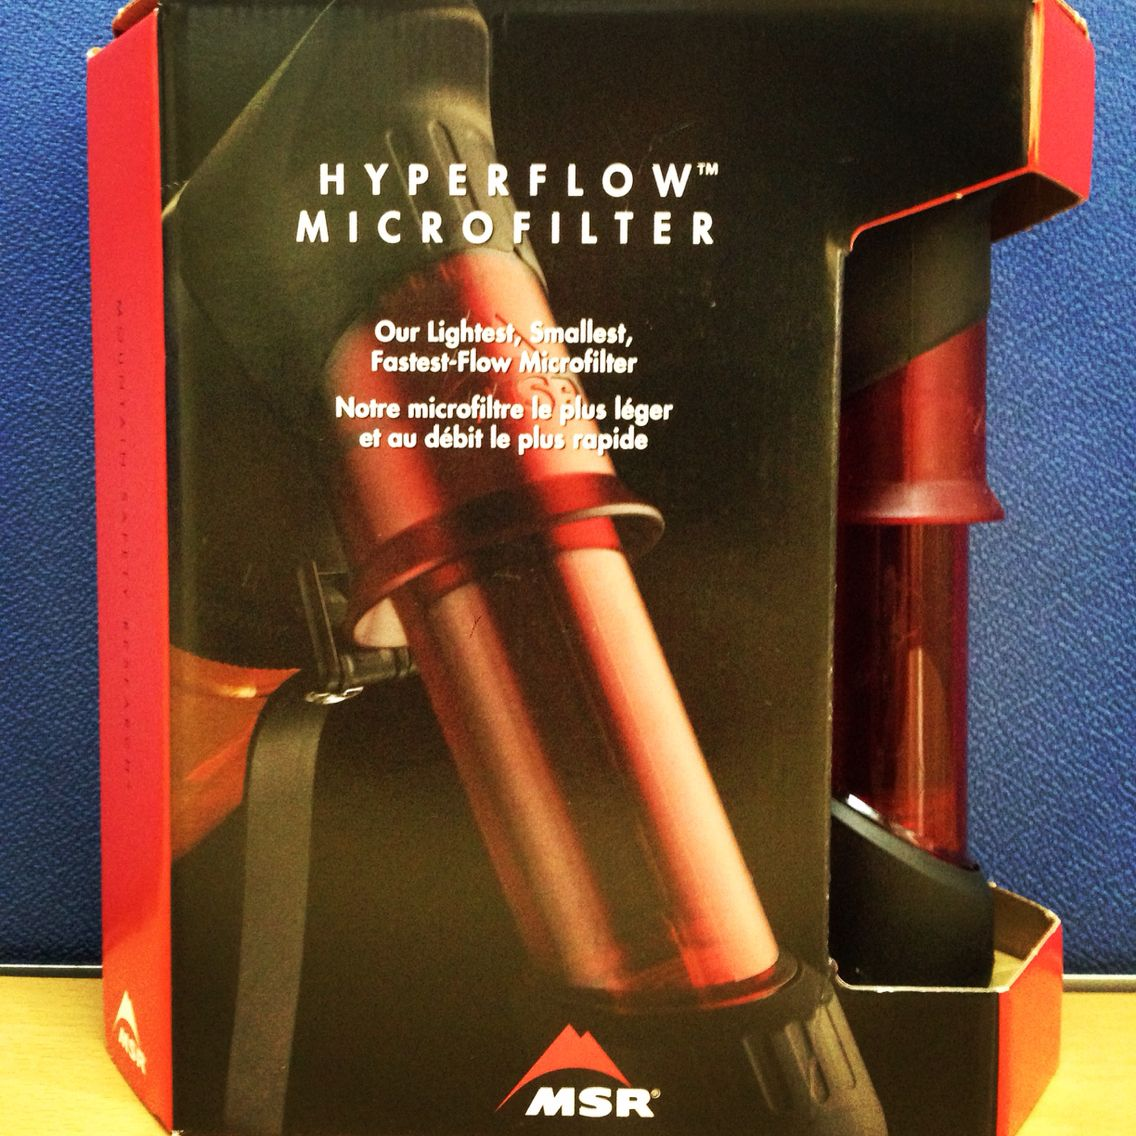 Msr hyperflow water filter p4100 with images water